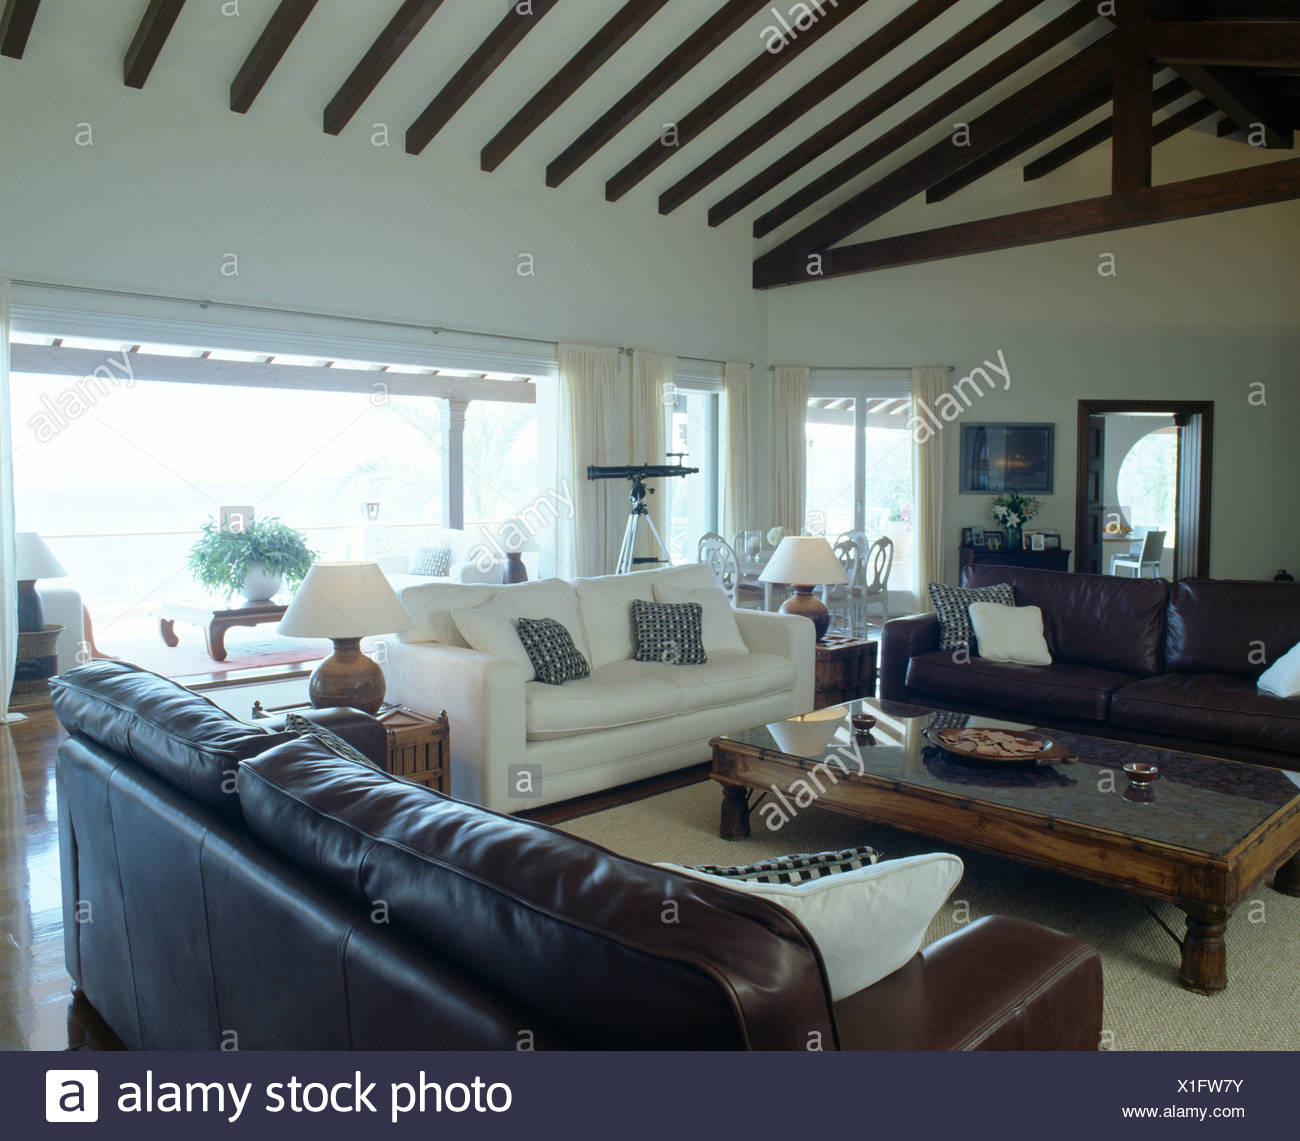 Brown Leather Sofas And White Sofa In Modern Coastal Living Room With  Indonesian Wood Coffee Table And Beamed Apex Ceiling